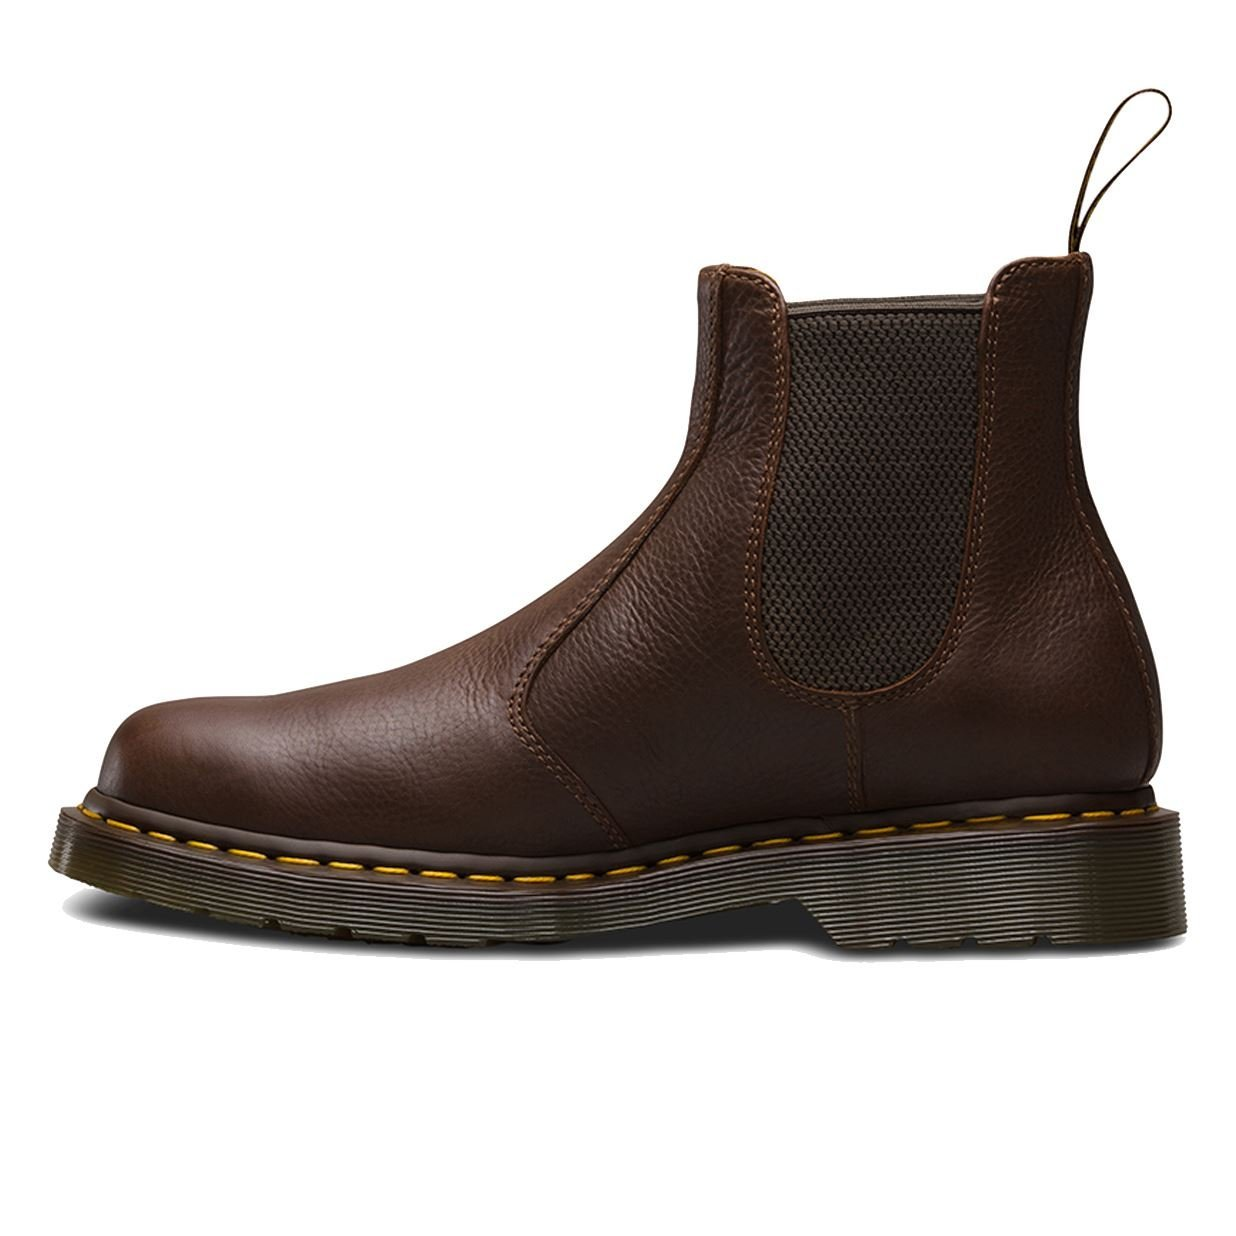 Dr. Martens Men's 2976 Carpathian Chelsea Boot, Tan, 3 UK/4 M US by Dr. Martens